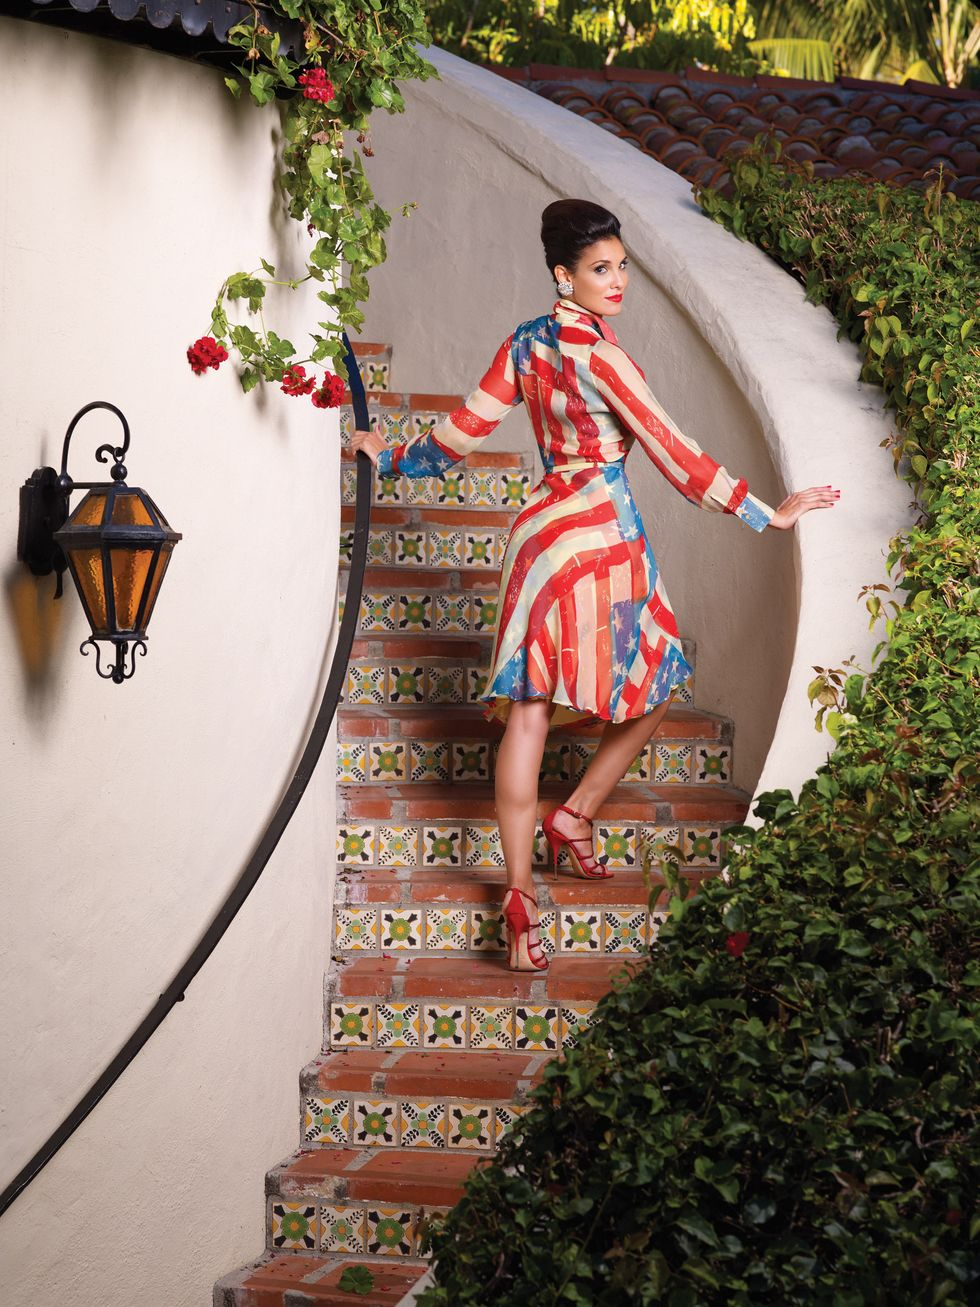 Daniela Ruah climbs a staircase dressed in a loose american flag print dress.